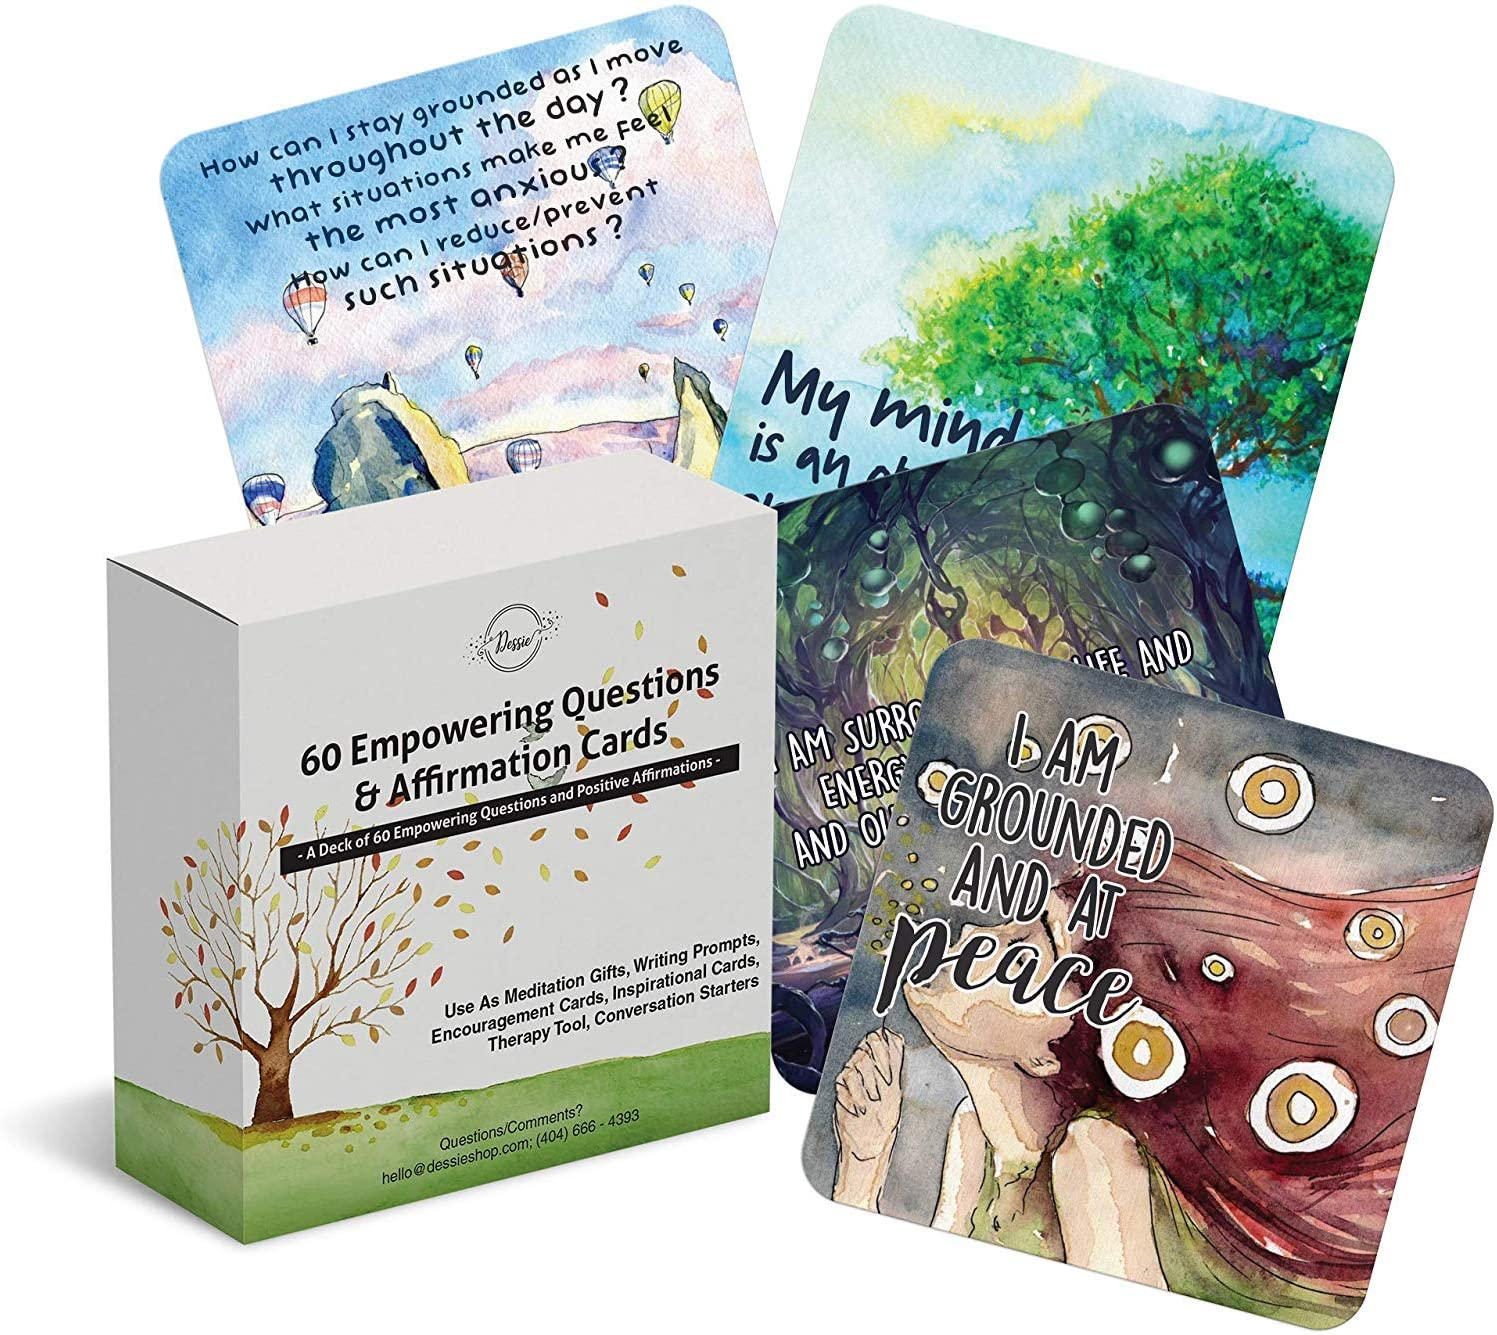 60 Affirmation Cards with Thought Provoking Empowering Questions.